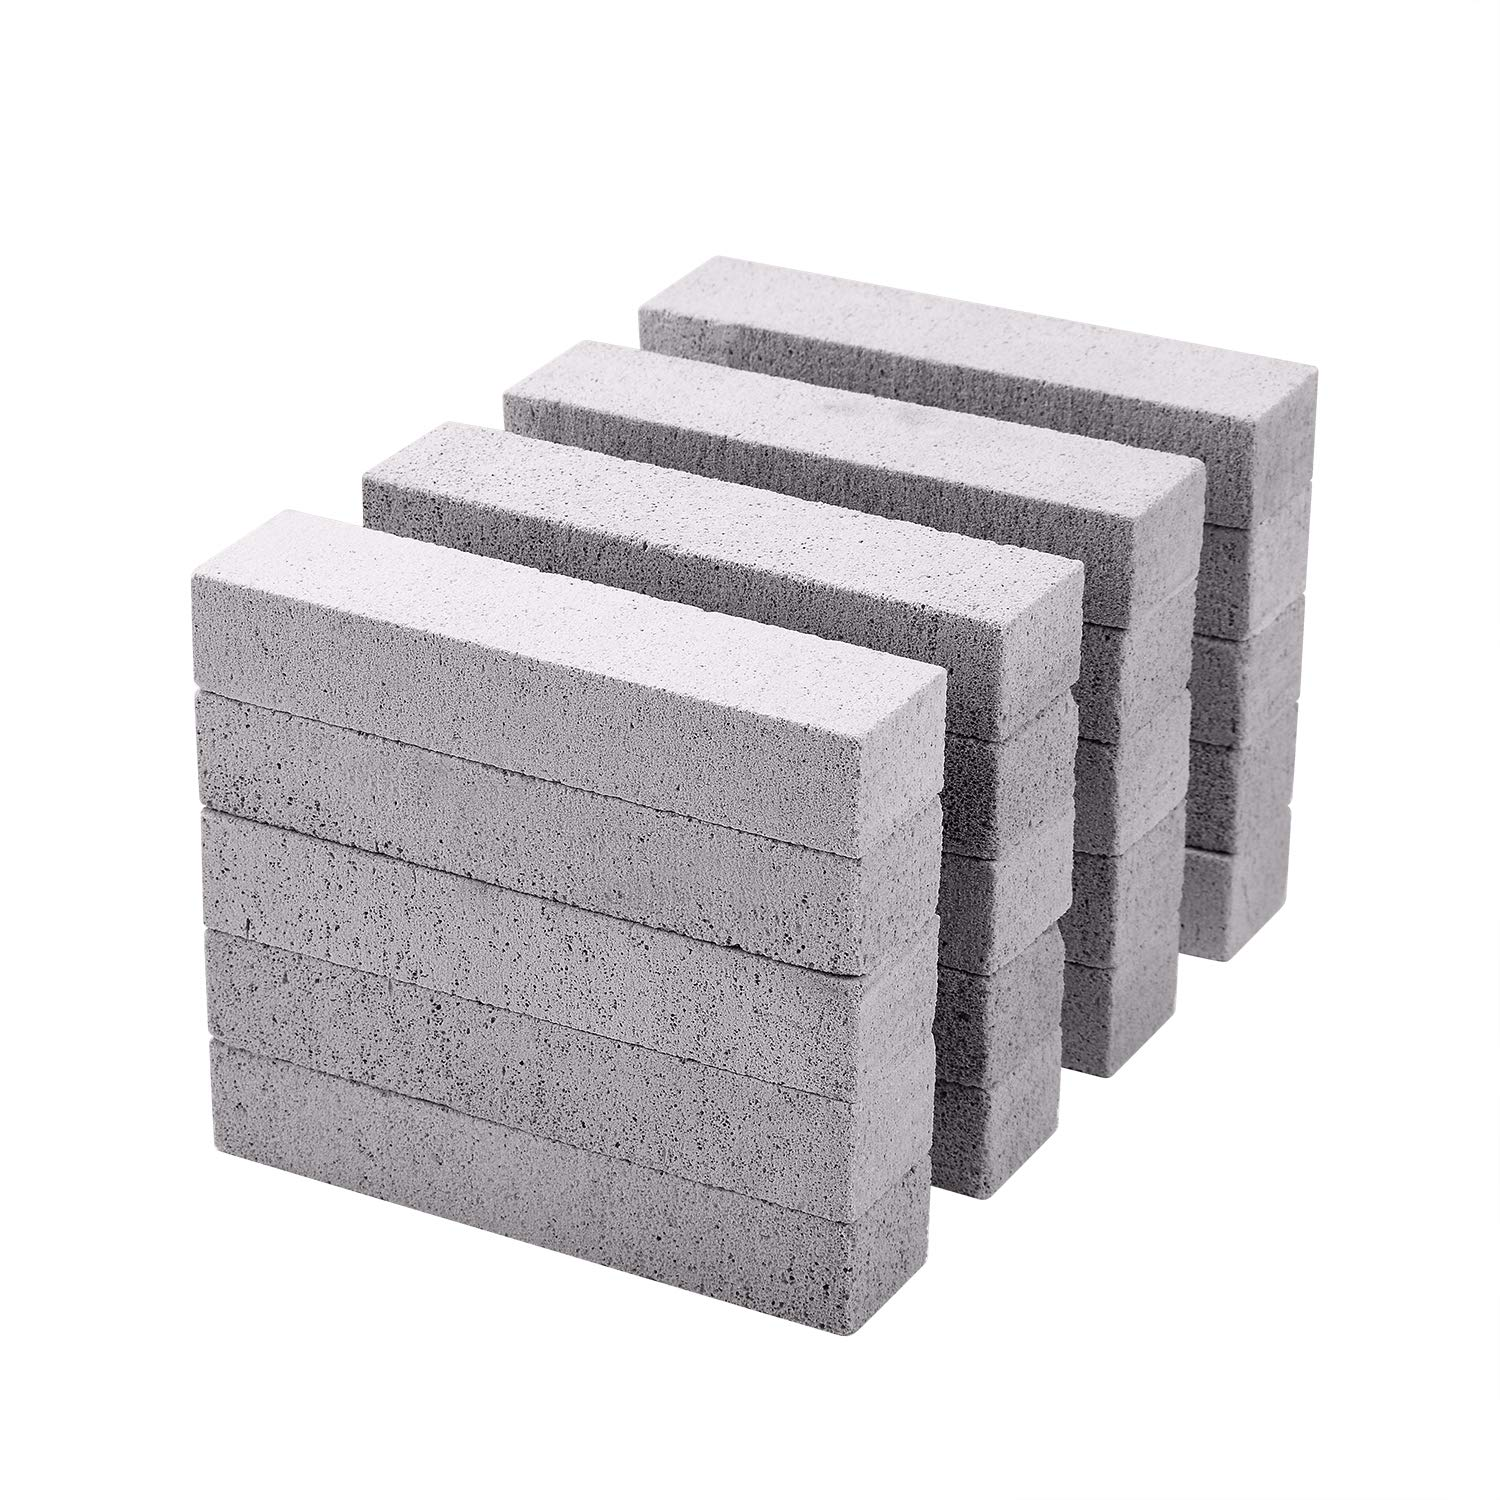 20 PCS Pumice Stone Toilet Bowl Cleaner, Long-Lasting Pumice Stone for Toilet Bowl and Tile Cleaning, Saves You 50% More Money, 1 Minute Remove Stubborn Stains on Swimming Pool Tiles, Toilet Bowls by NOTCHIS